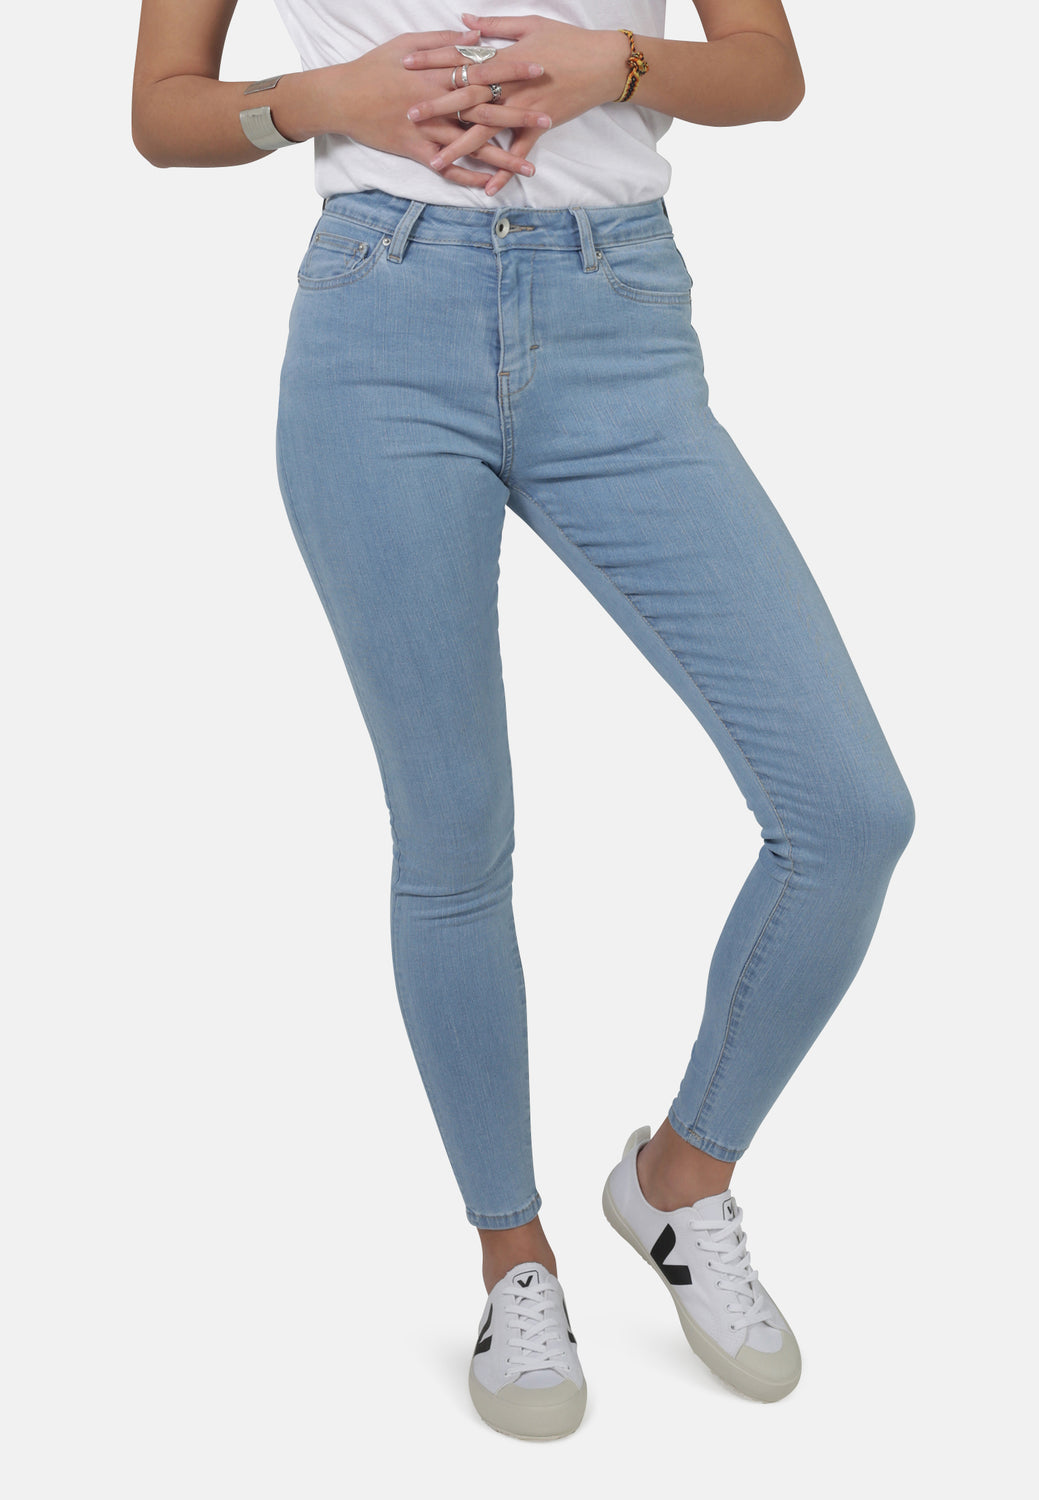 JANE // Organic Super Skinny High Waist Jeans in Light Blue Eco Wash - Monkee Genes Organic Jeans Denim - Women's Super Skinny Monkee Genes Official  Monkee Genes Official